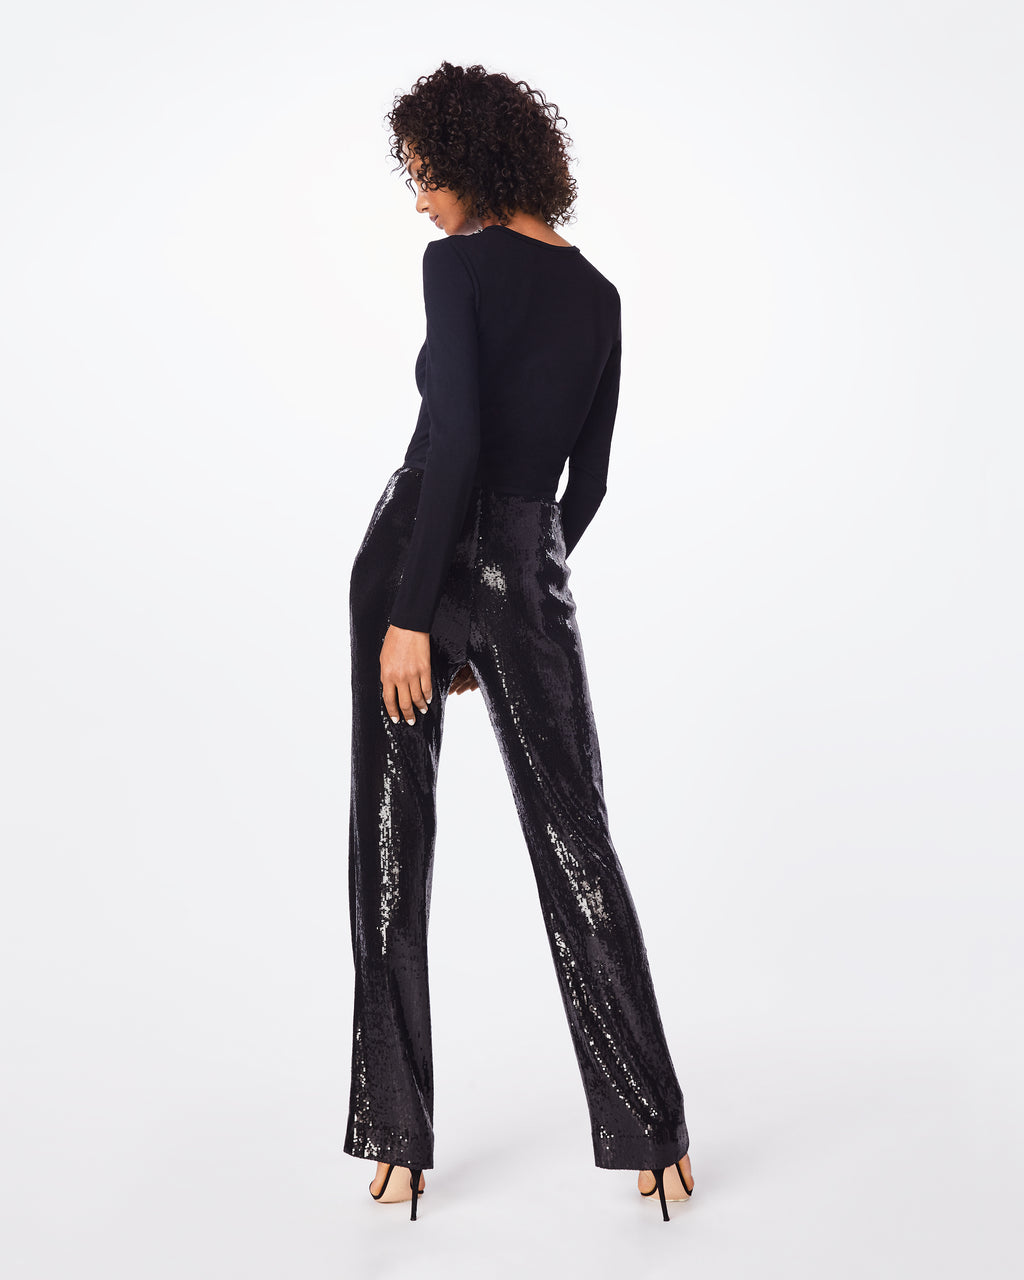 BH10394 - SEQUIN HIGH WAISTED PANT - bottoms - pants - These high waisted, sequined pants feture a center back concealed zipper for a flattering fit. It pairs perflectly with a silk blouse.